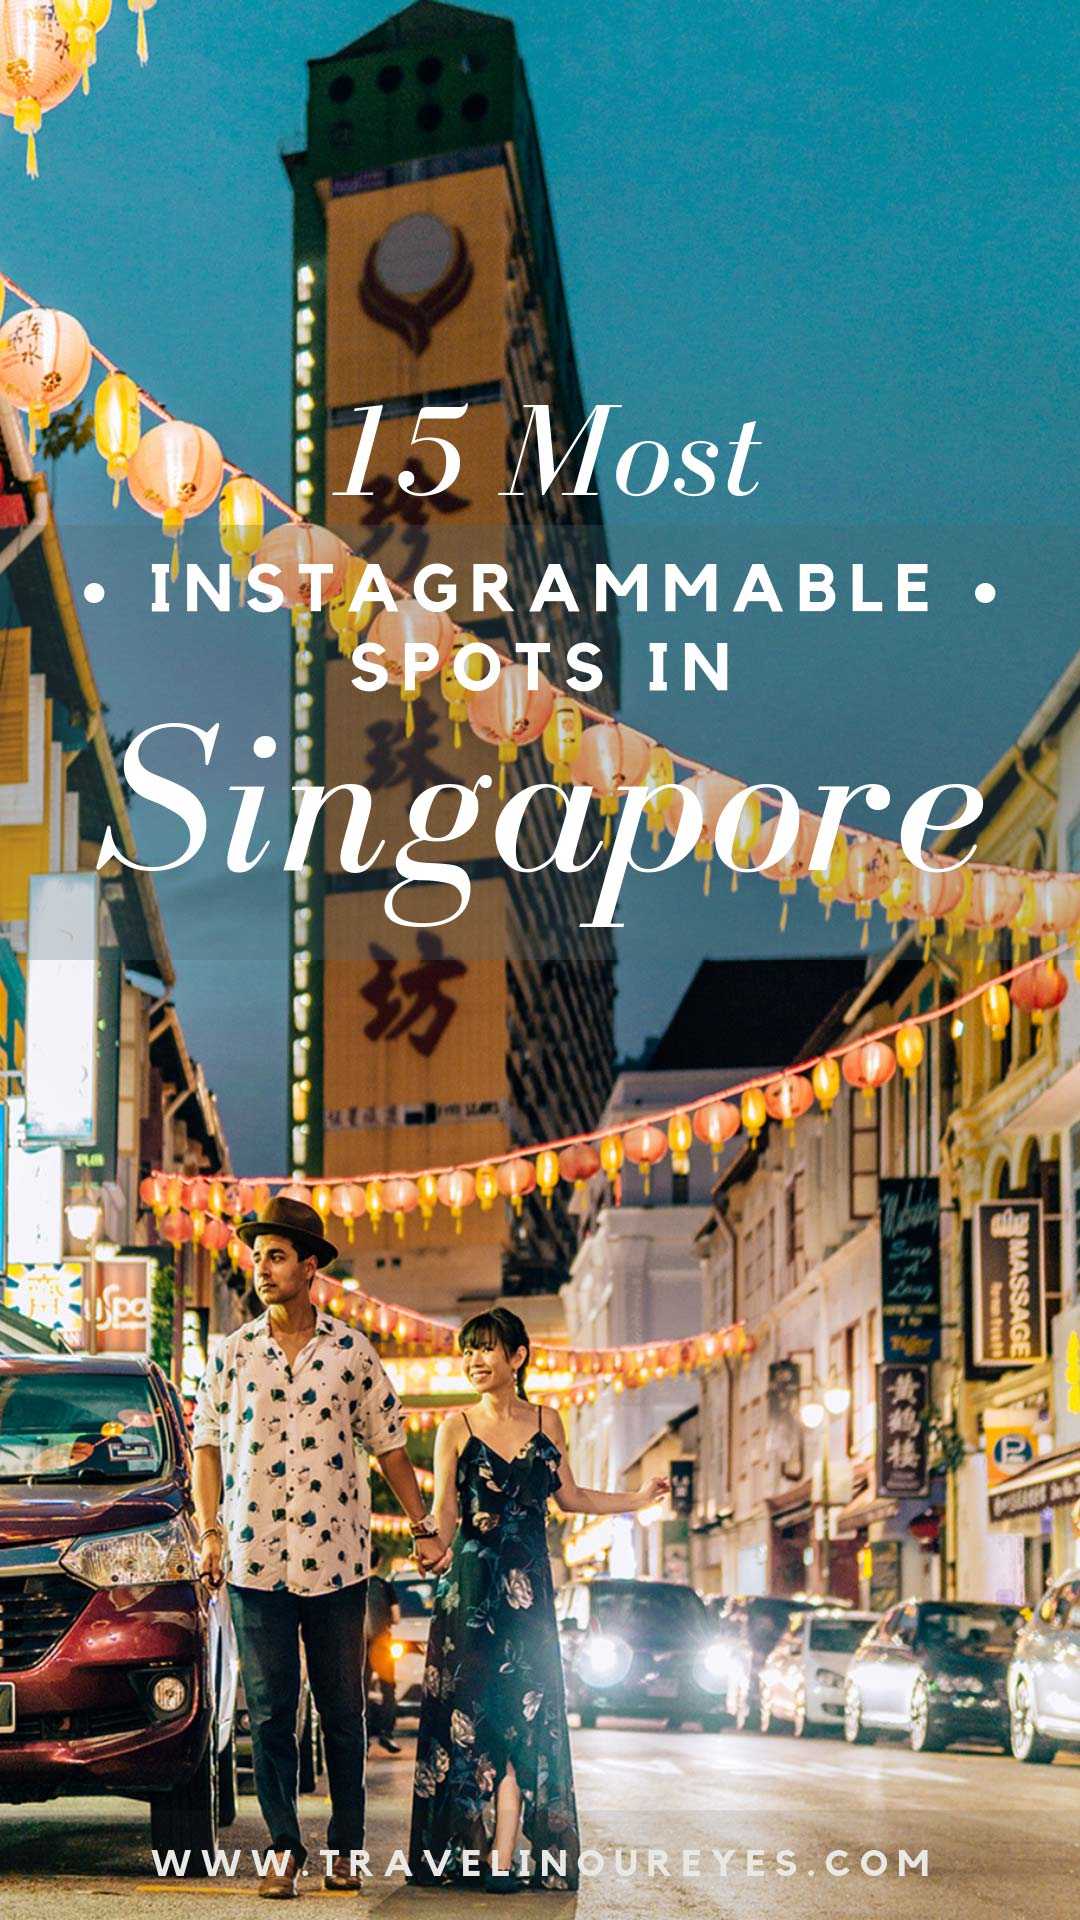 TOP INSTAGRAMMABLE PLACES IN SINGAPORE - Travel In Our Eyes